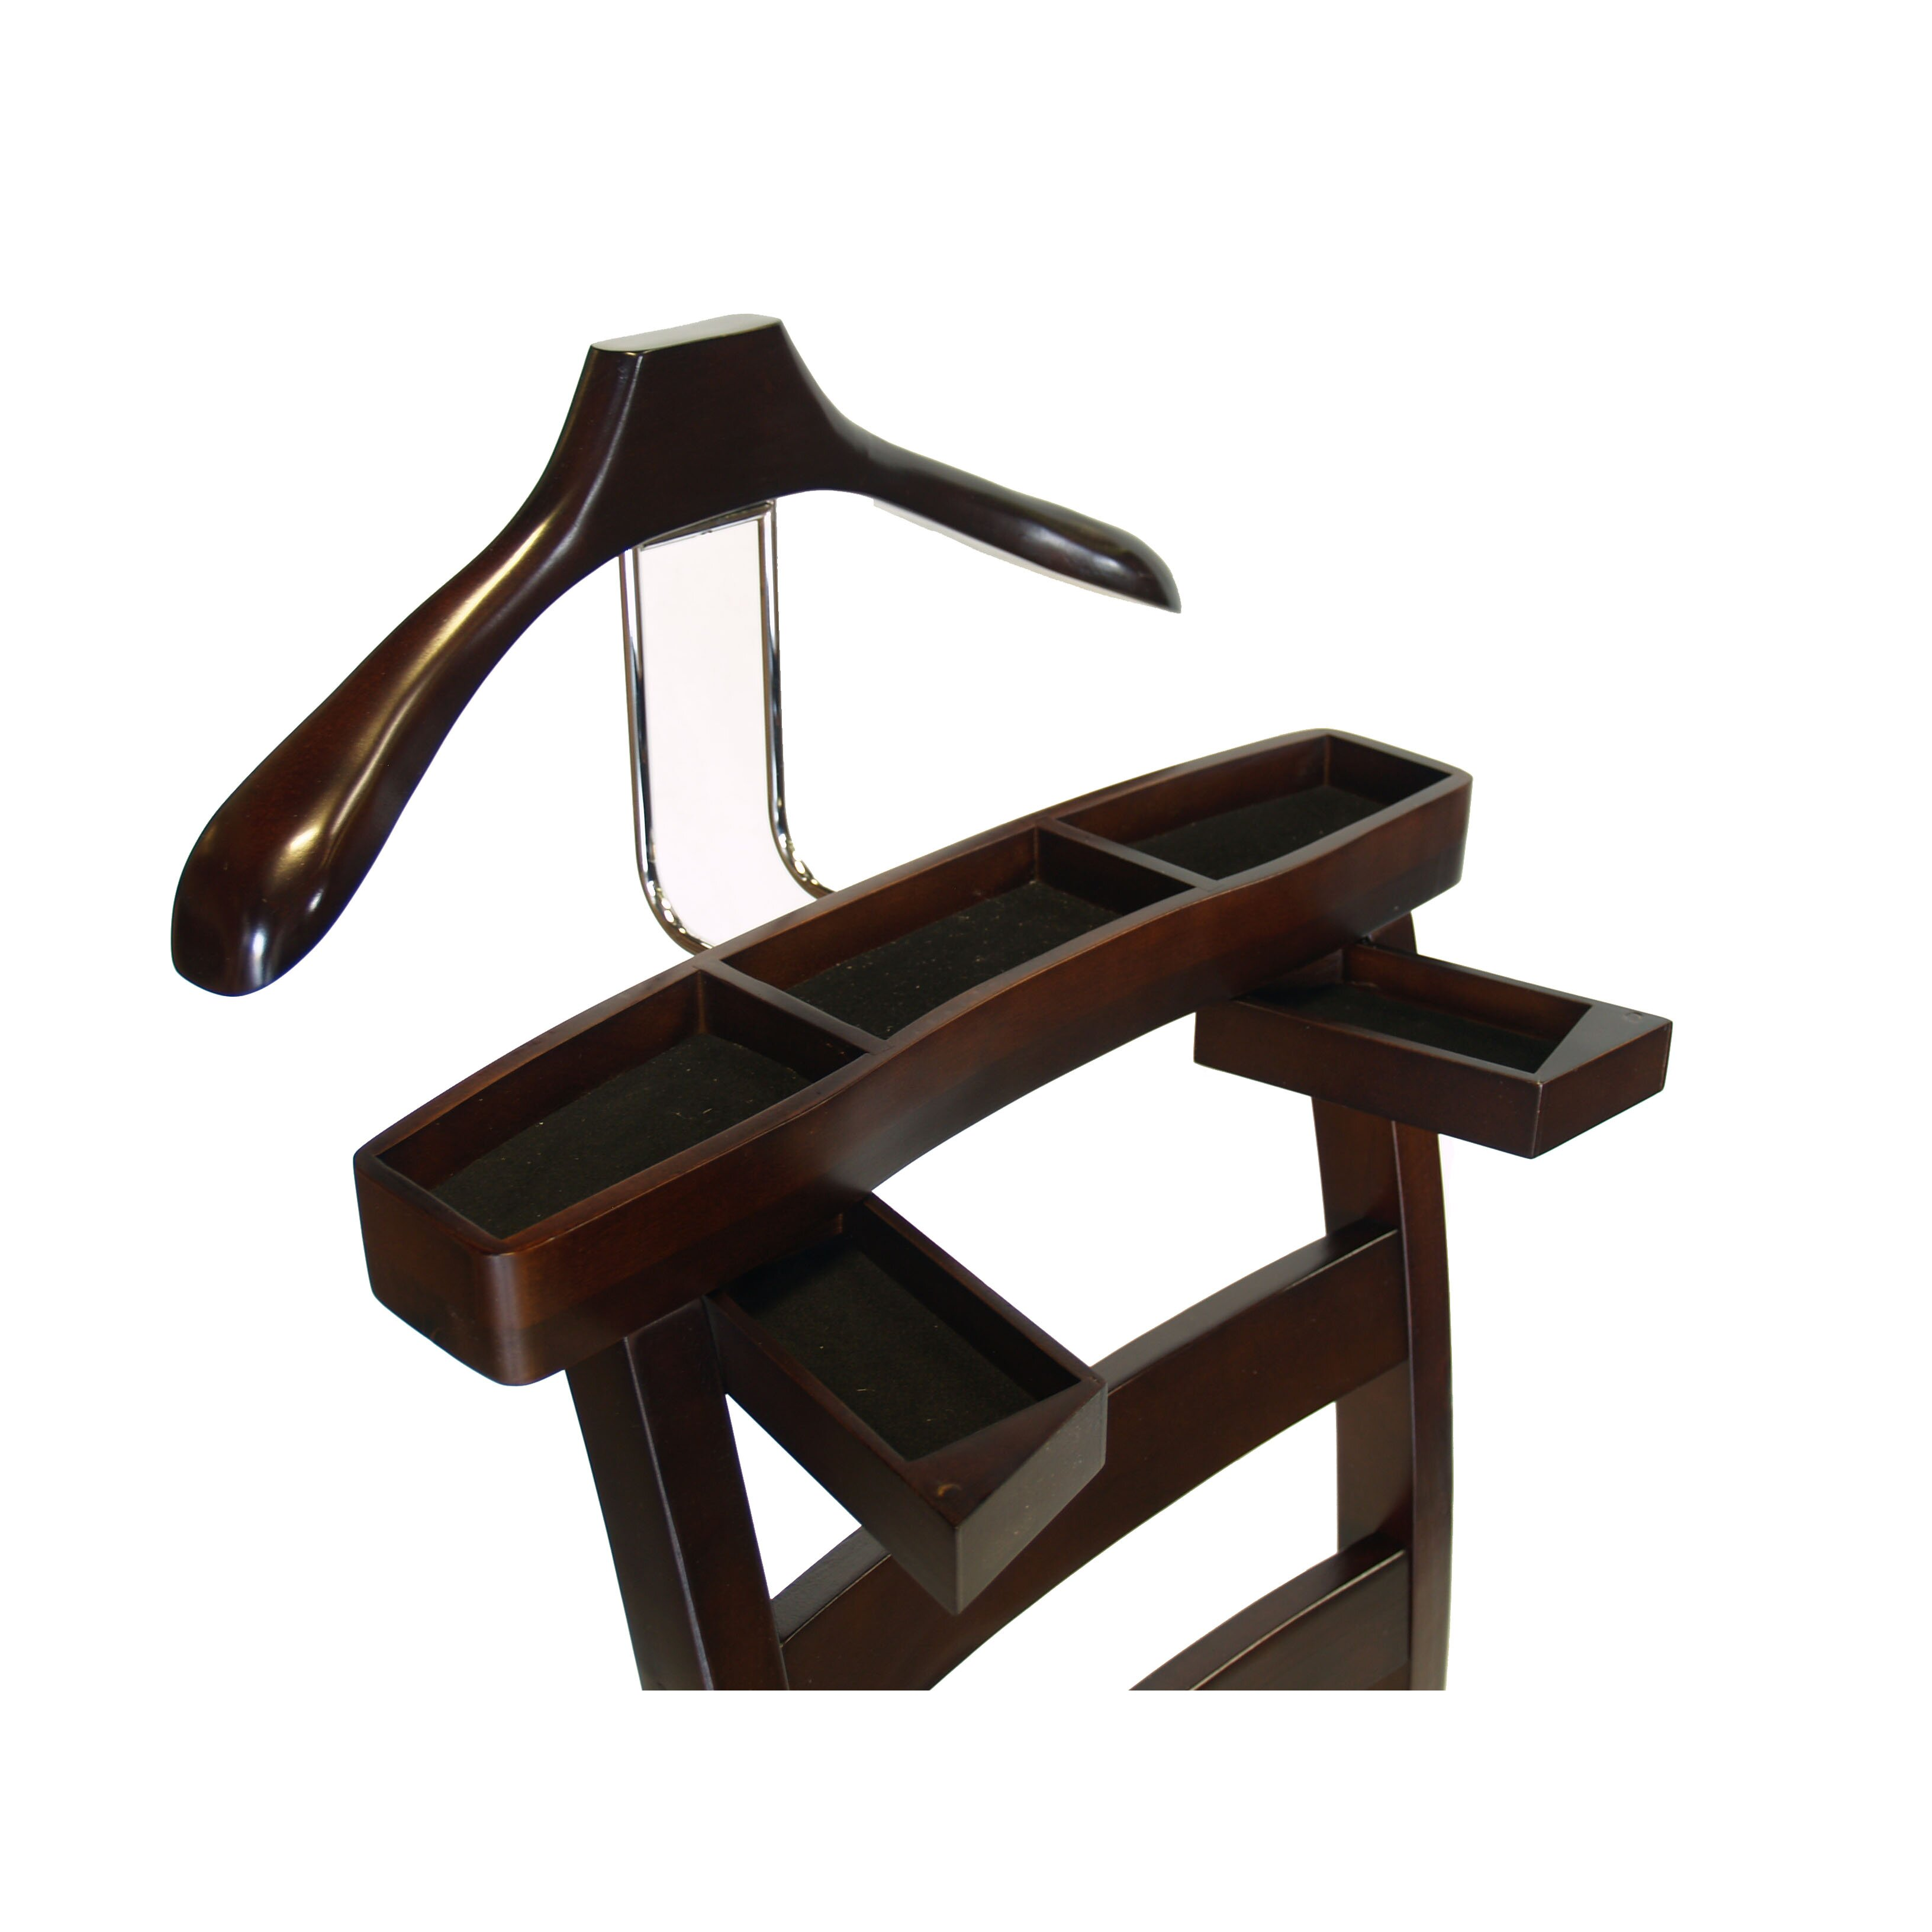 Darby home co chair valet stand reviews wayfair for Stand 2 b